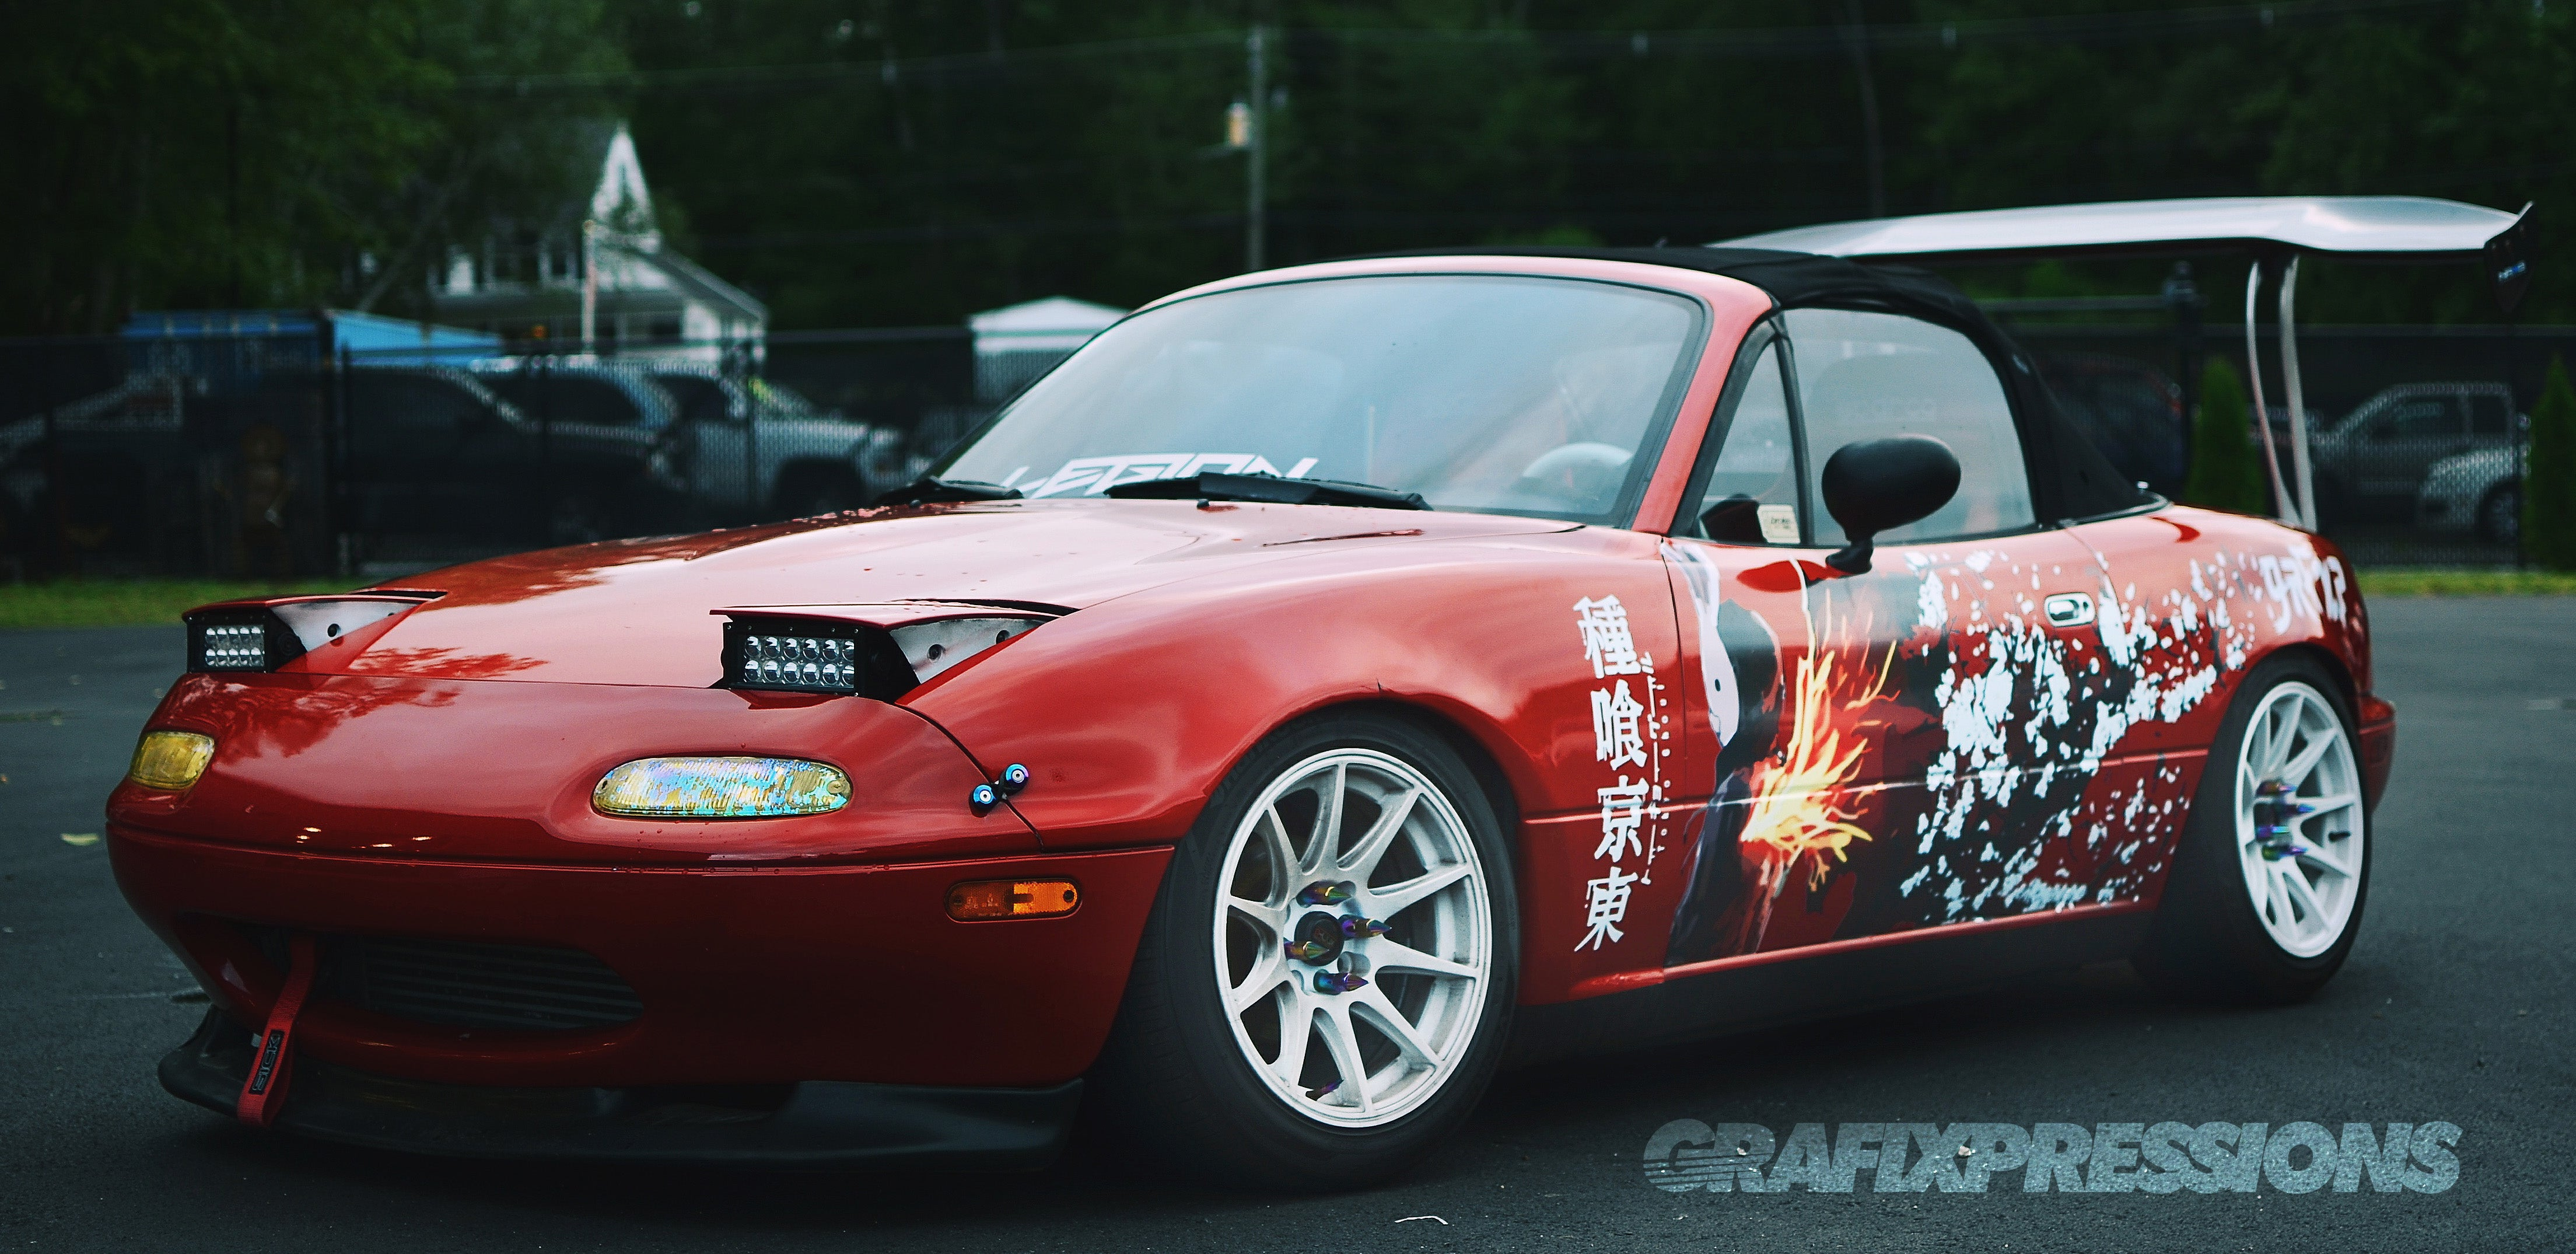 Jacobs miata with tokyo ghoul anime inspired livery a combination of full color printed graphics and die cut vinyl